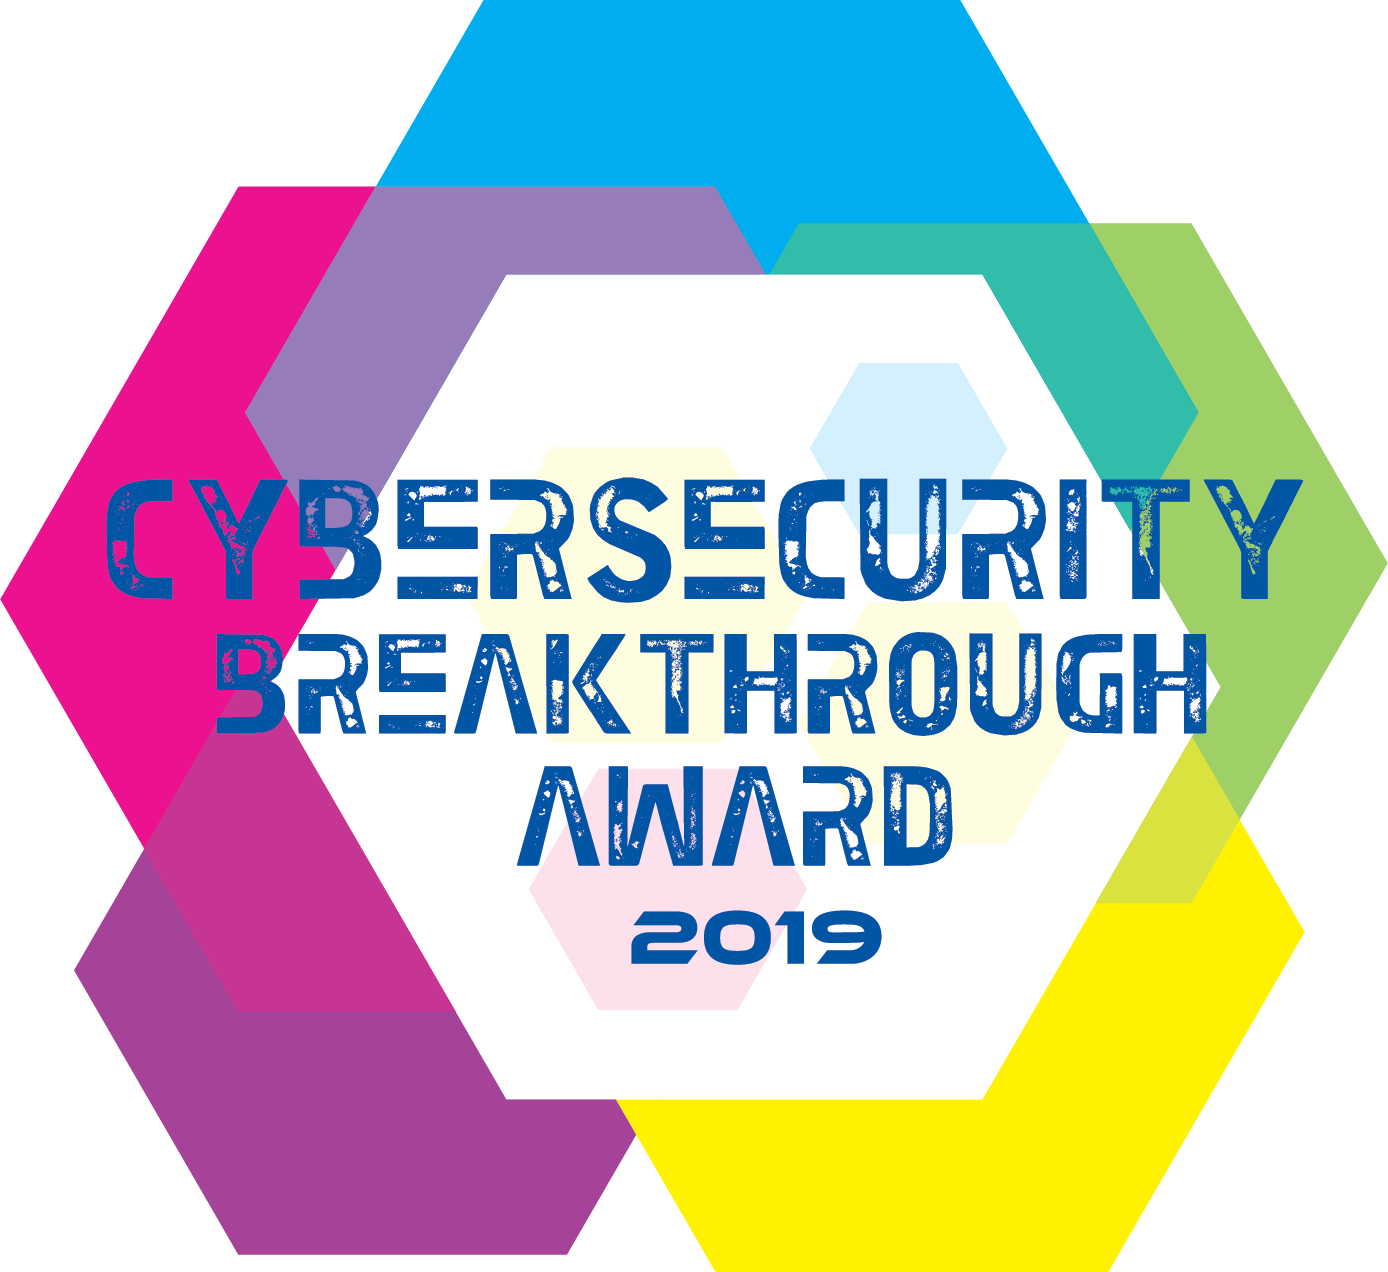 CyberSecurity Breakthrough Award for Overall Mobile Security Solution of the Year